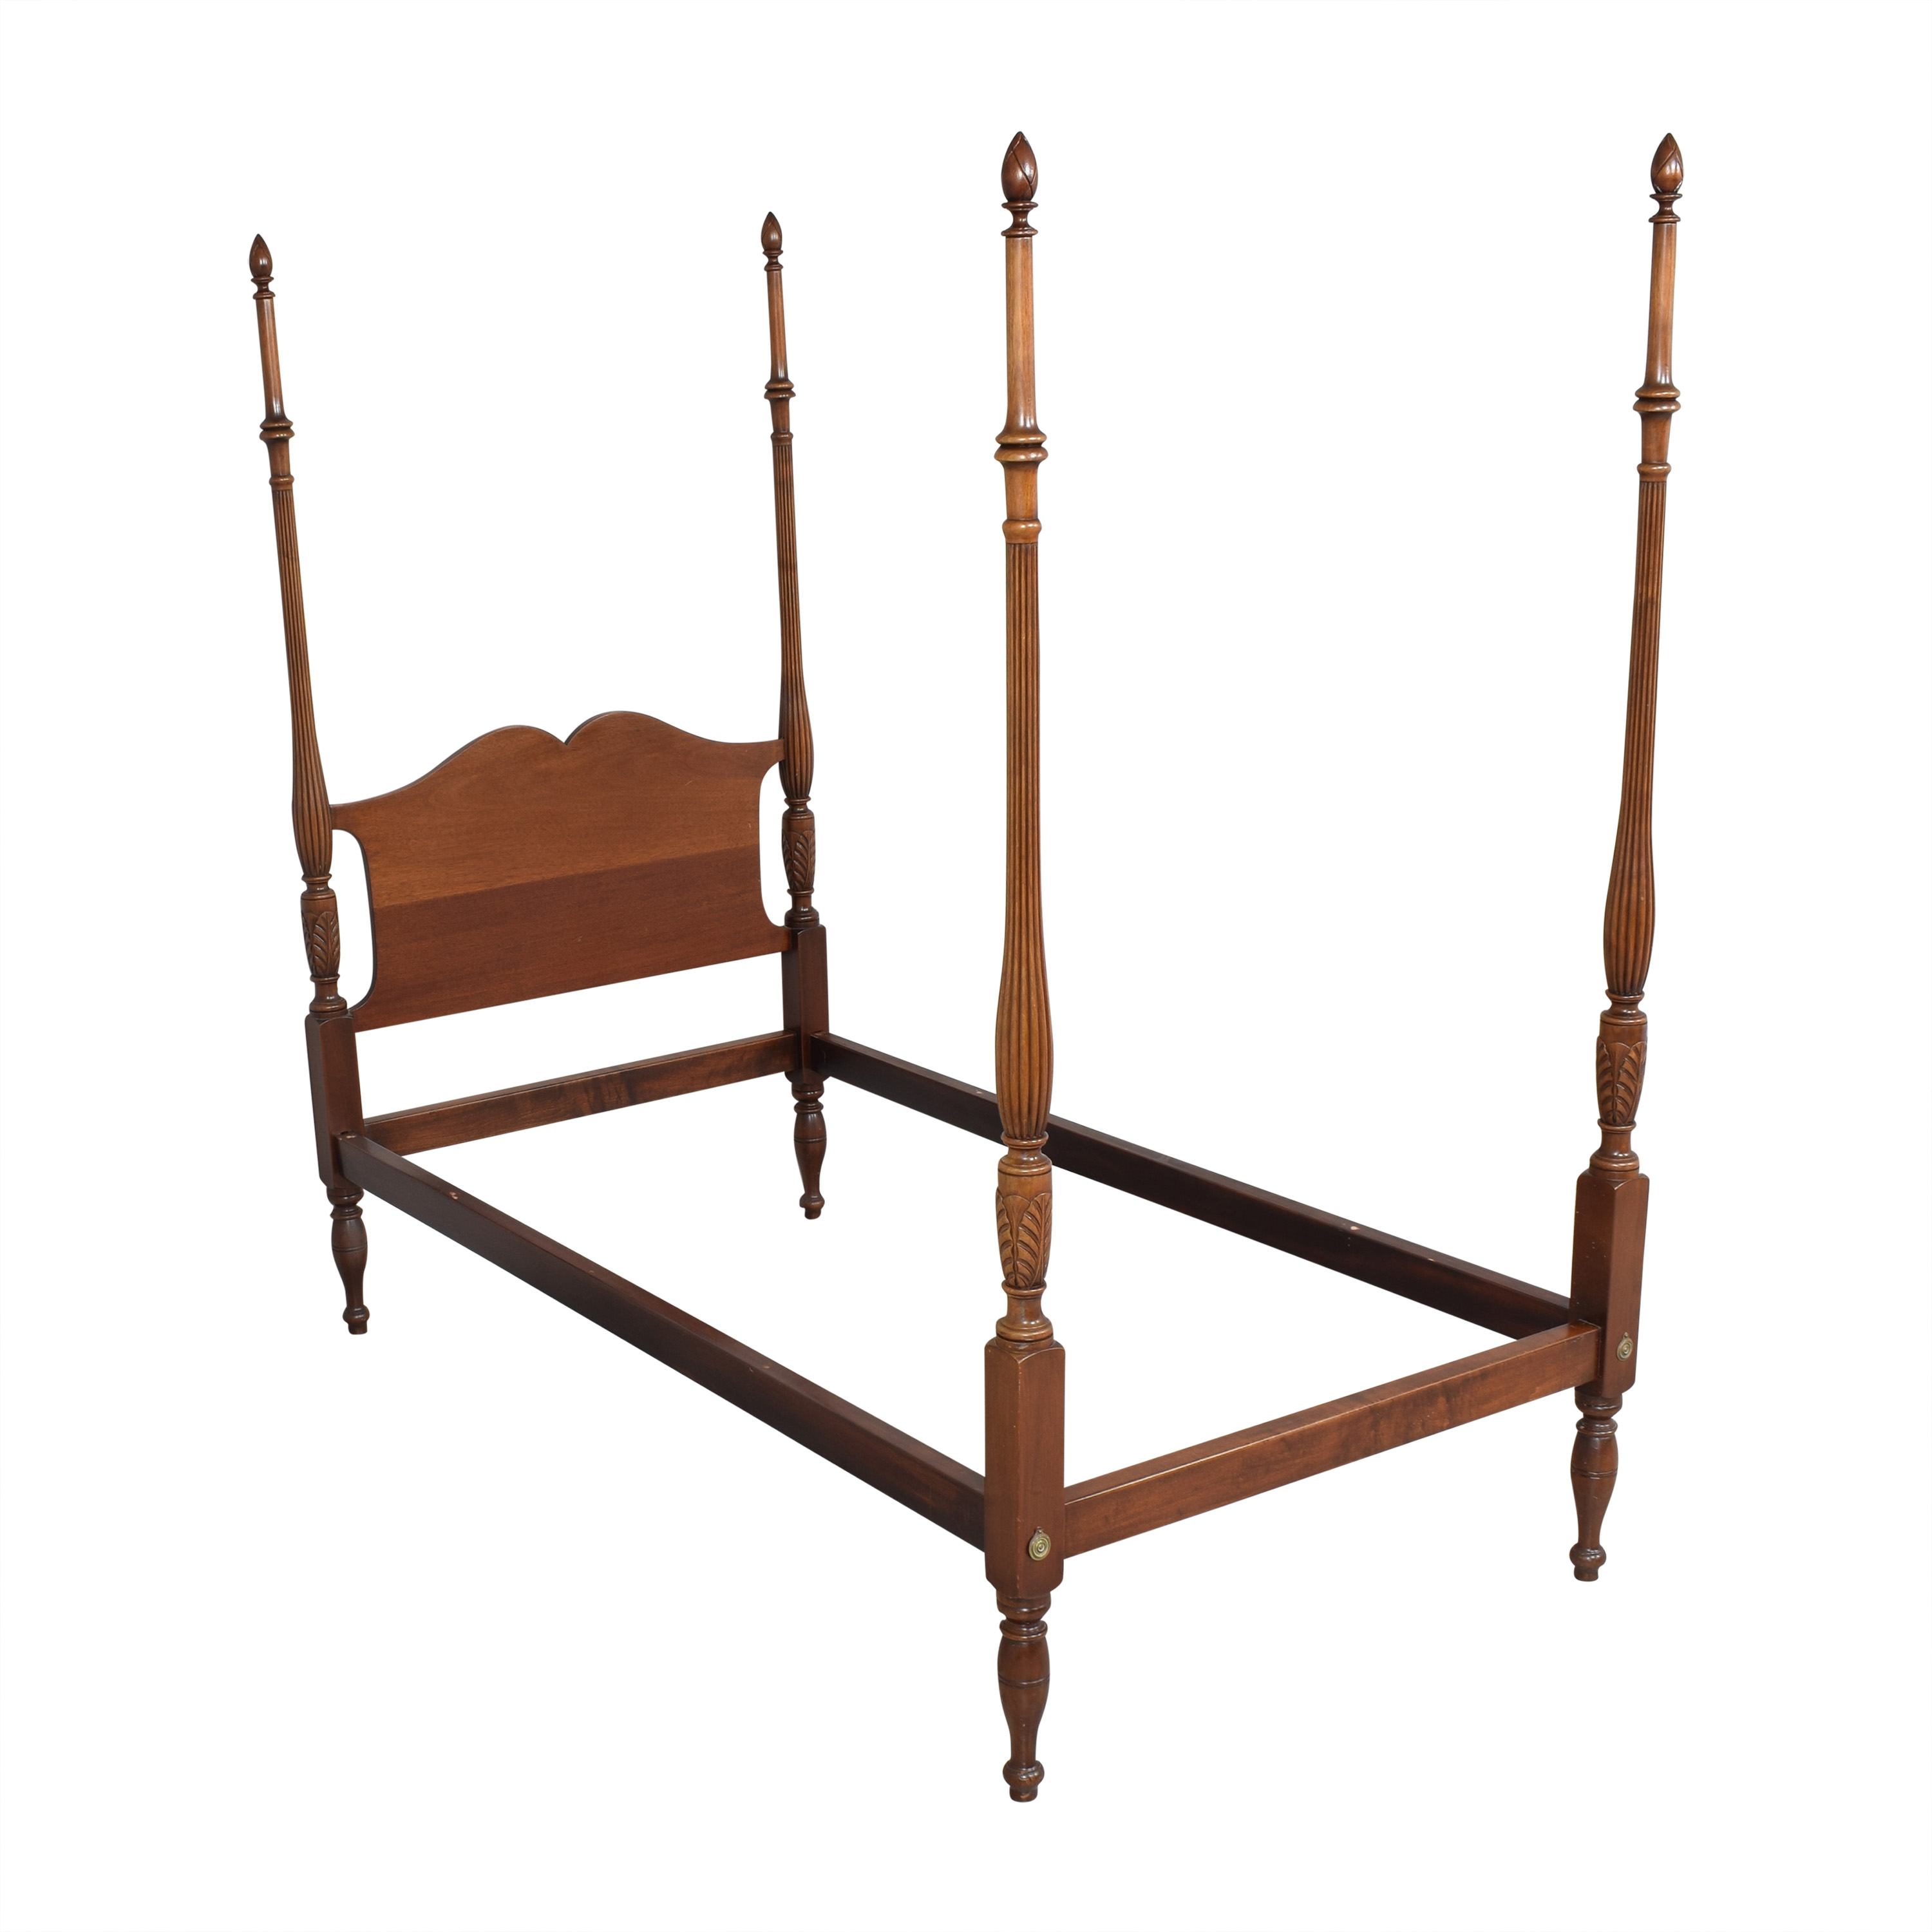 Four Poster Twin Bed / Bed Frames